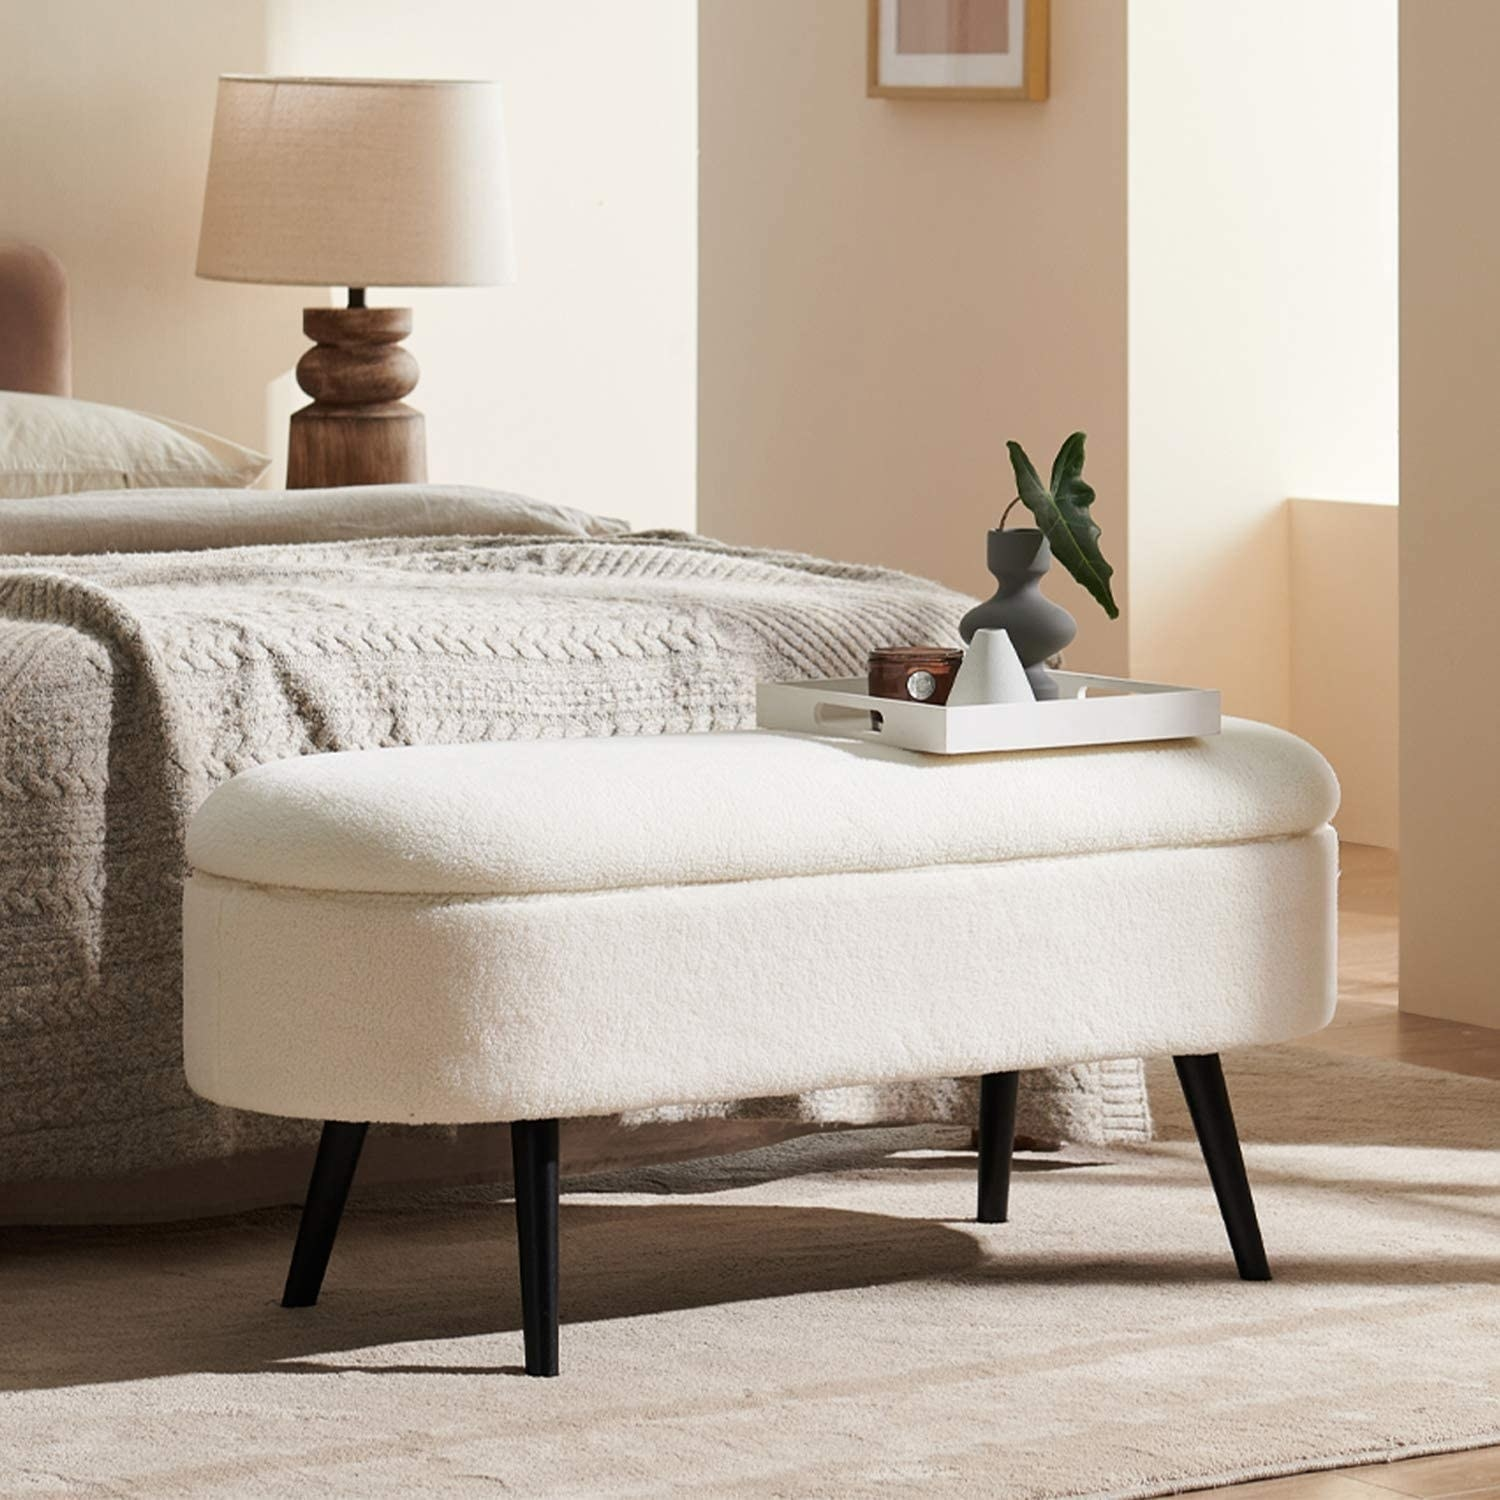 plush bench ottoman with black legs at an angle. it has a removable top and is placed at the foot of a bed.